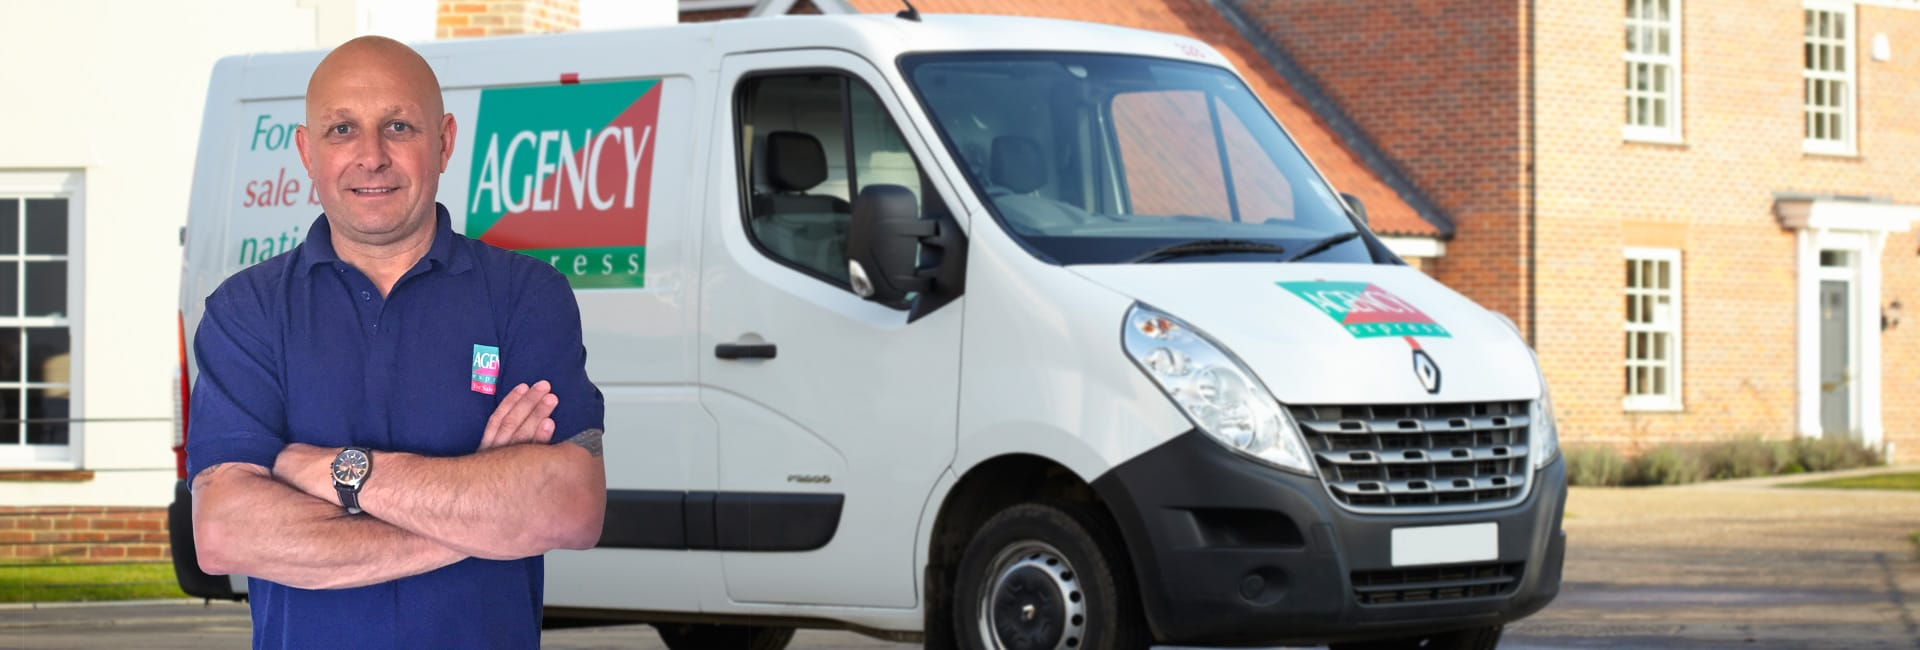 Agency Express franchise case study. Franchisee Phil Harrington with van.